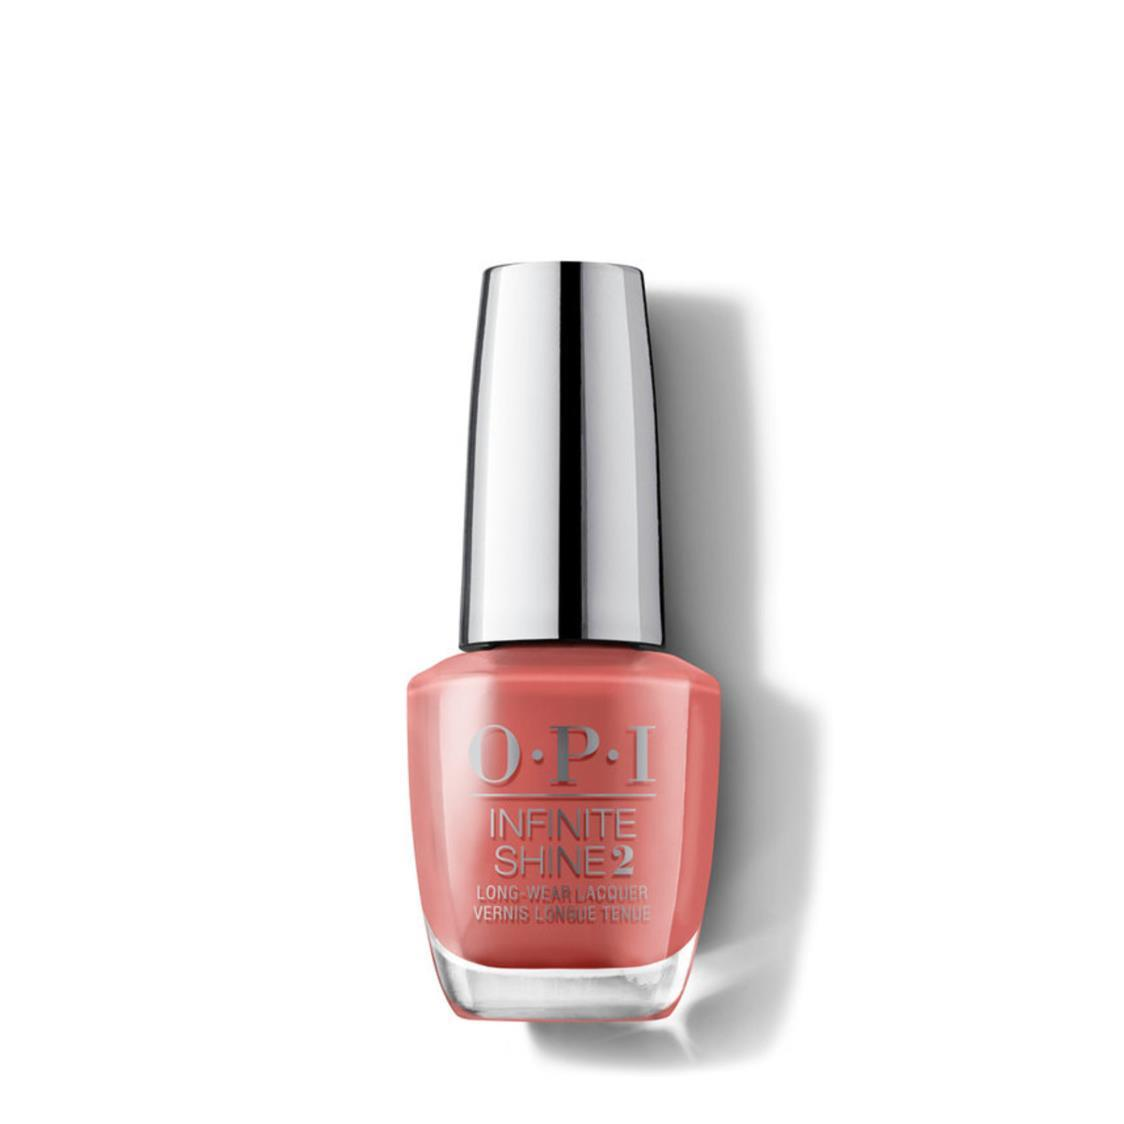 Opi Fall Collection 2018 Is My Solar Clock Is Ticking 15ml